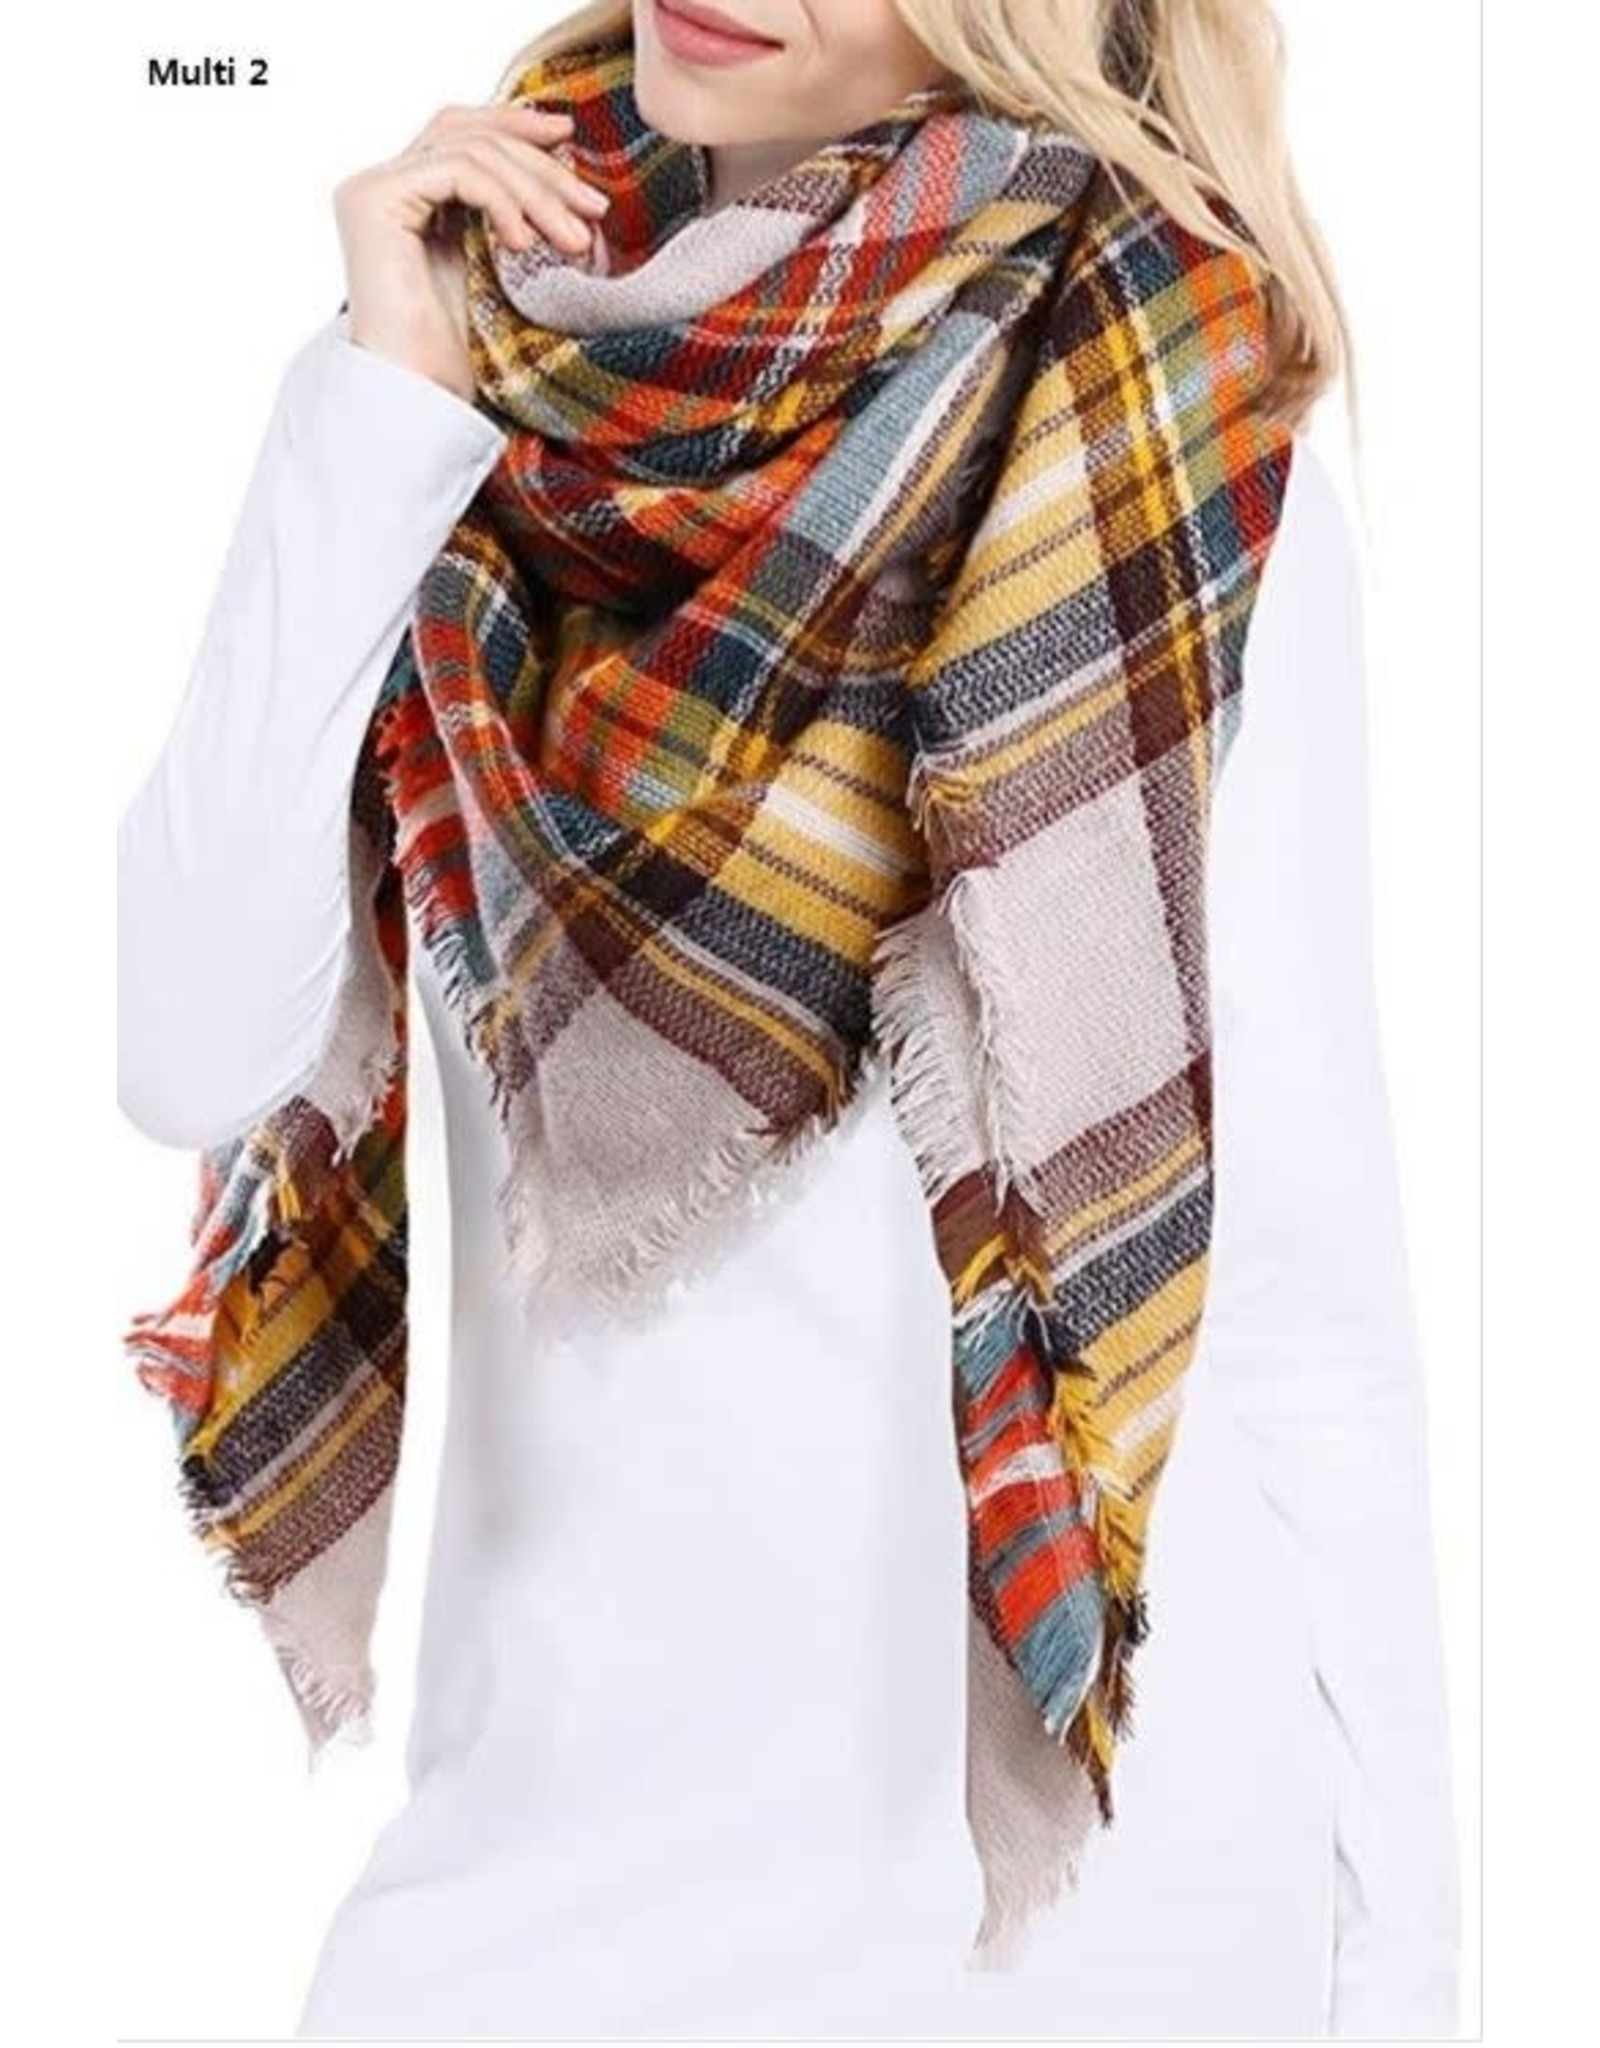 PLAID OVERSIZED BLANKET SCARF 54X54IN